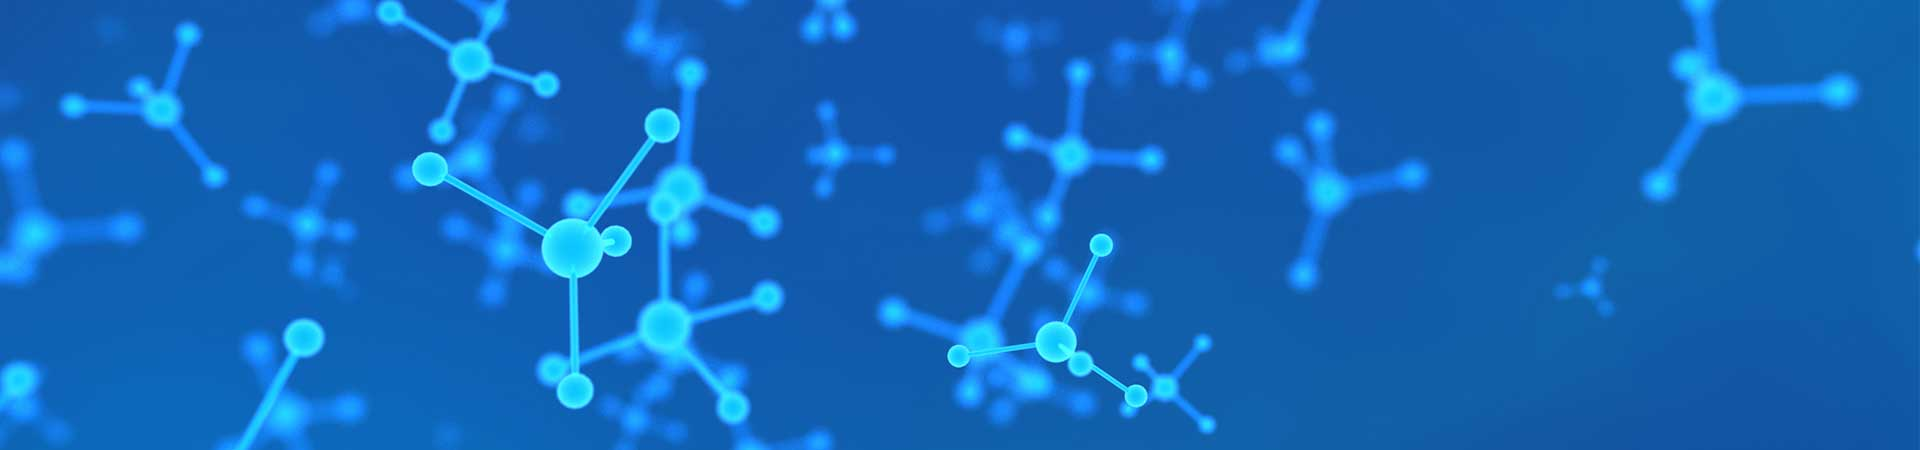 Blue chemistry molecules